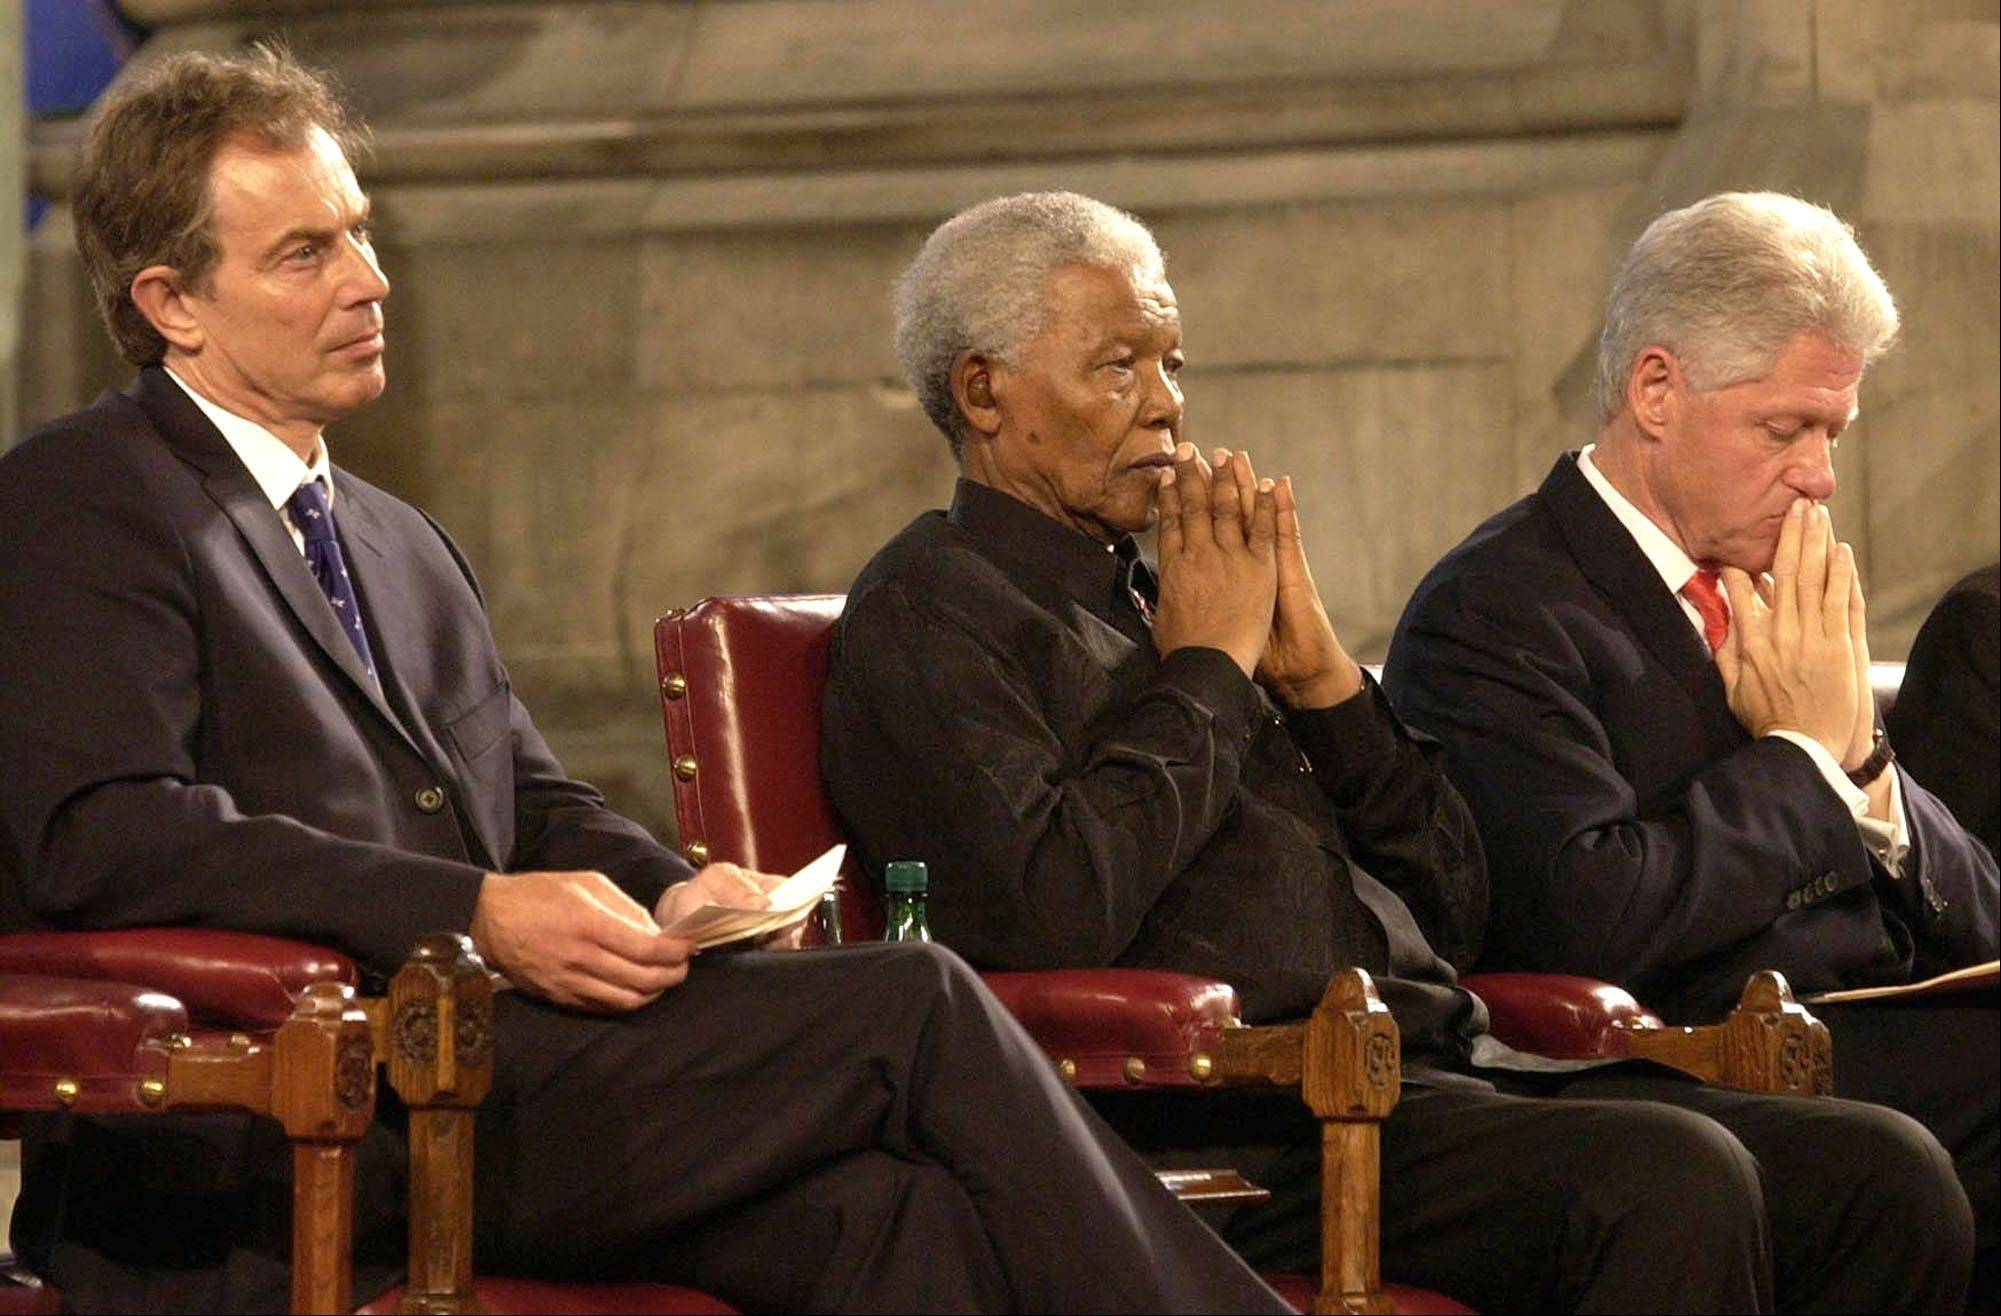 British Prime Minister Tony Blair, left, former South African President Nelson Mandela, center, and former US President Bill Clinton pause during a gala night to mark the centenary of the Rhodes Trust and the establishment of the Mandela Rhodes Foundation, at Westminster Hall, London, July 2, 2003.